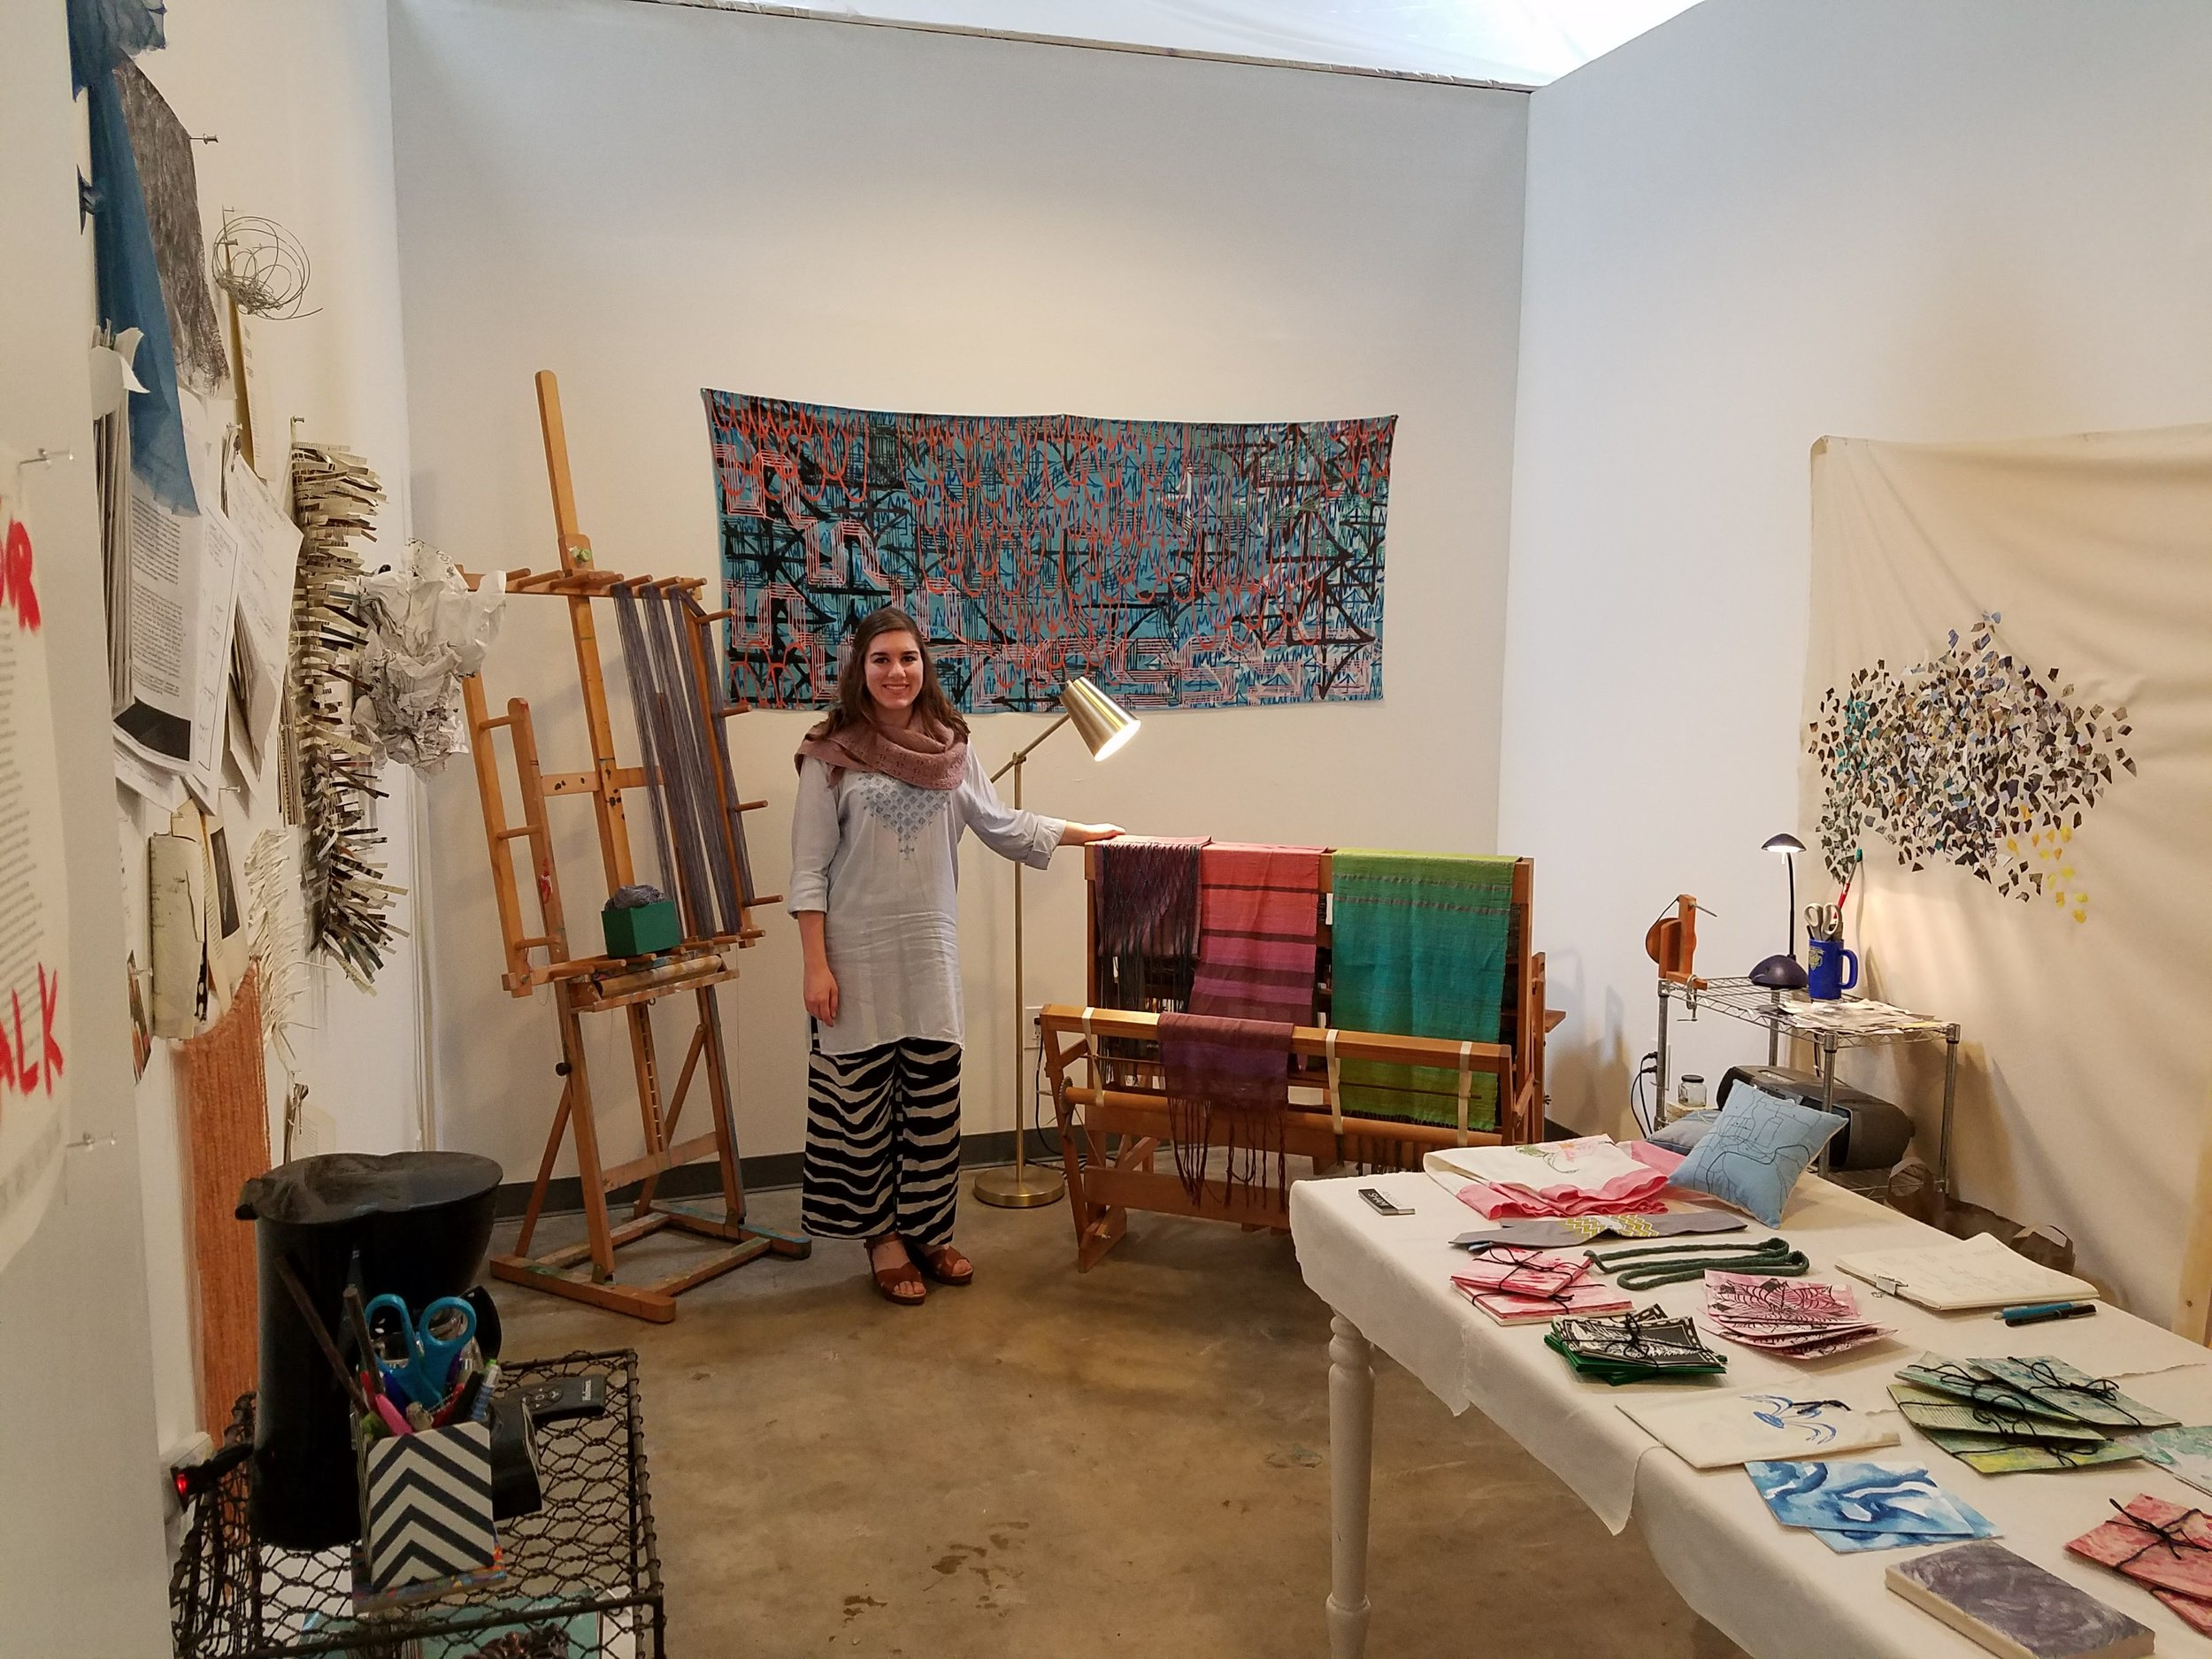 This is me in my studio, ready for the Open Studios event at Hawthorne Arts Complex earlier this month. I sold the two scarves on the left side of the loom, and have completed one more since then.